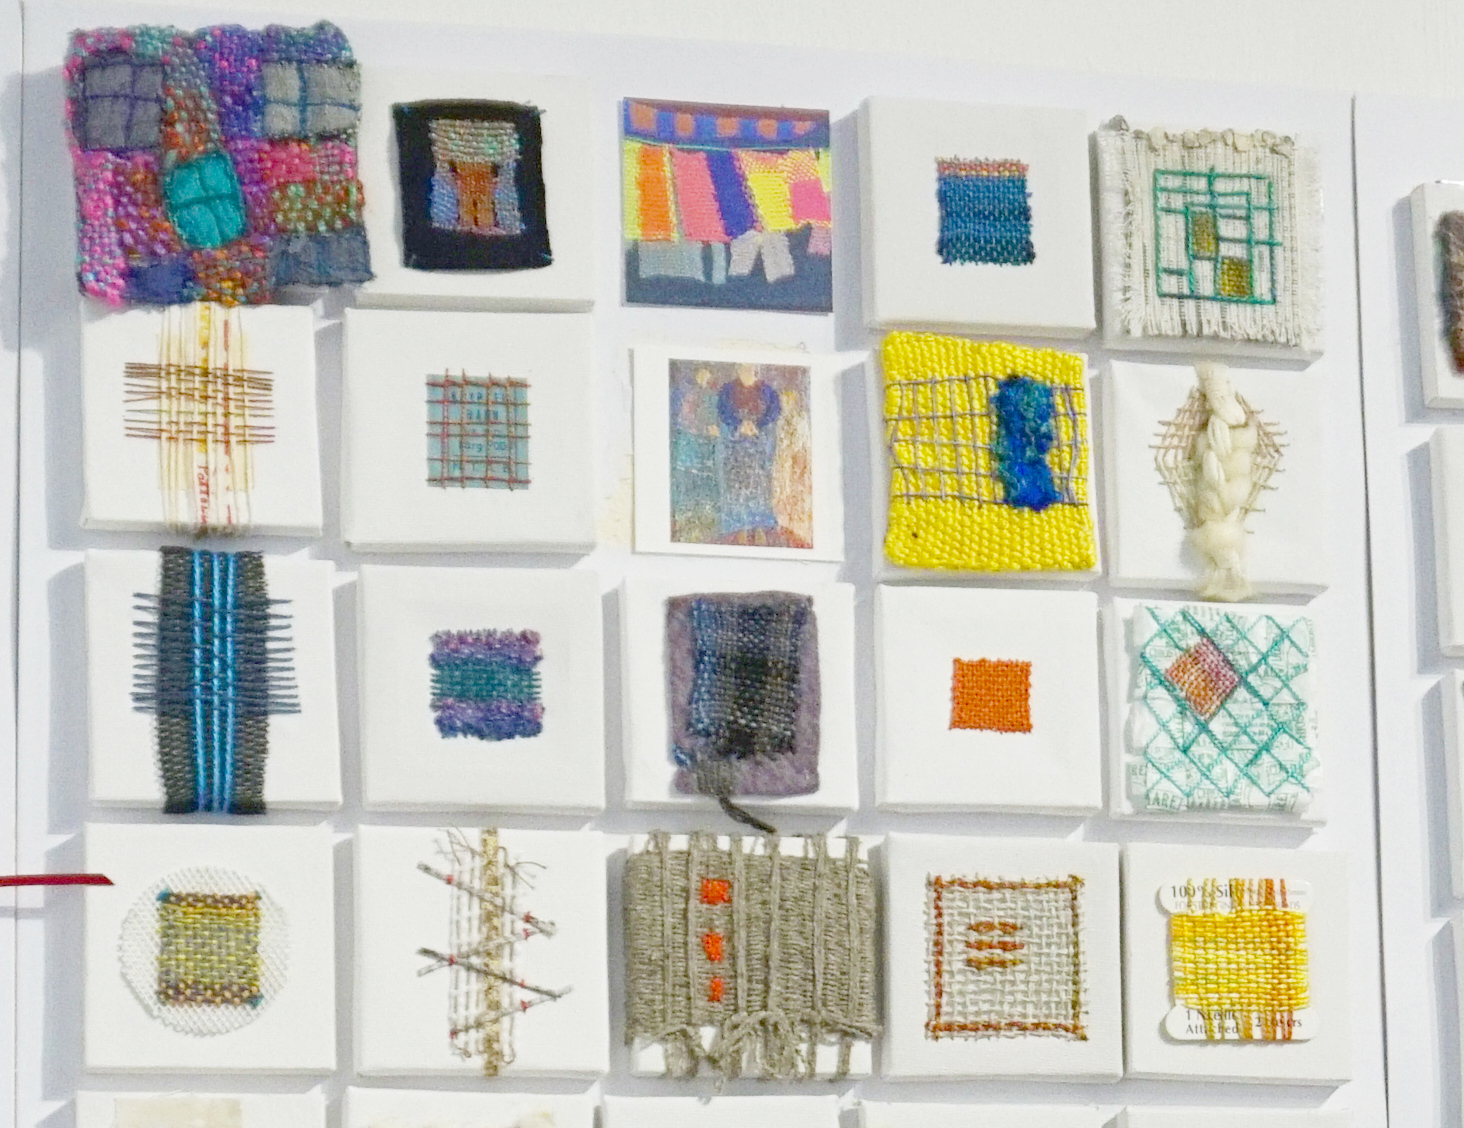 Small detailed pieces of textile art in an exhibition at the Knitting and Stitching Show 2017